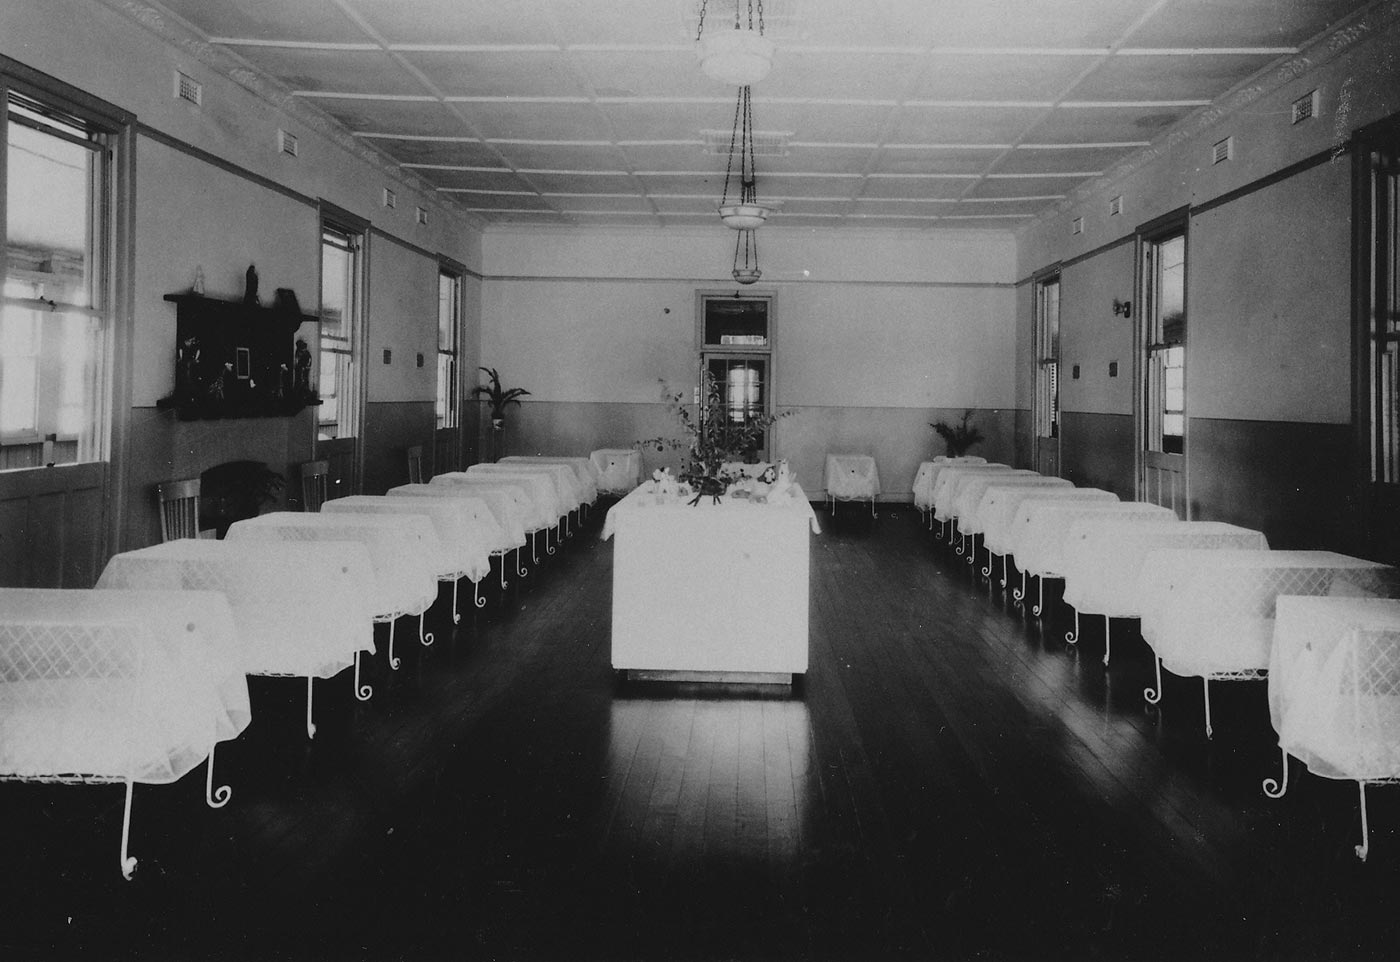 Black and white image showing a large room with two rows of nine white cots on each side. The cots have curved metal feet and are covered with a white, lacy material. At the centre of the room is a large table, covered in white, with a vase of flowers on top. - click to view larger image